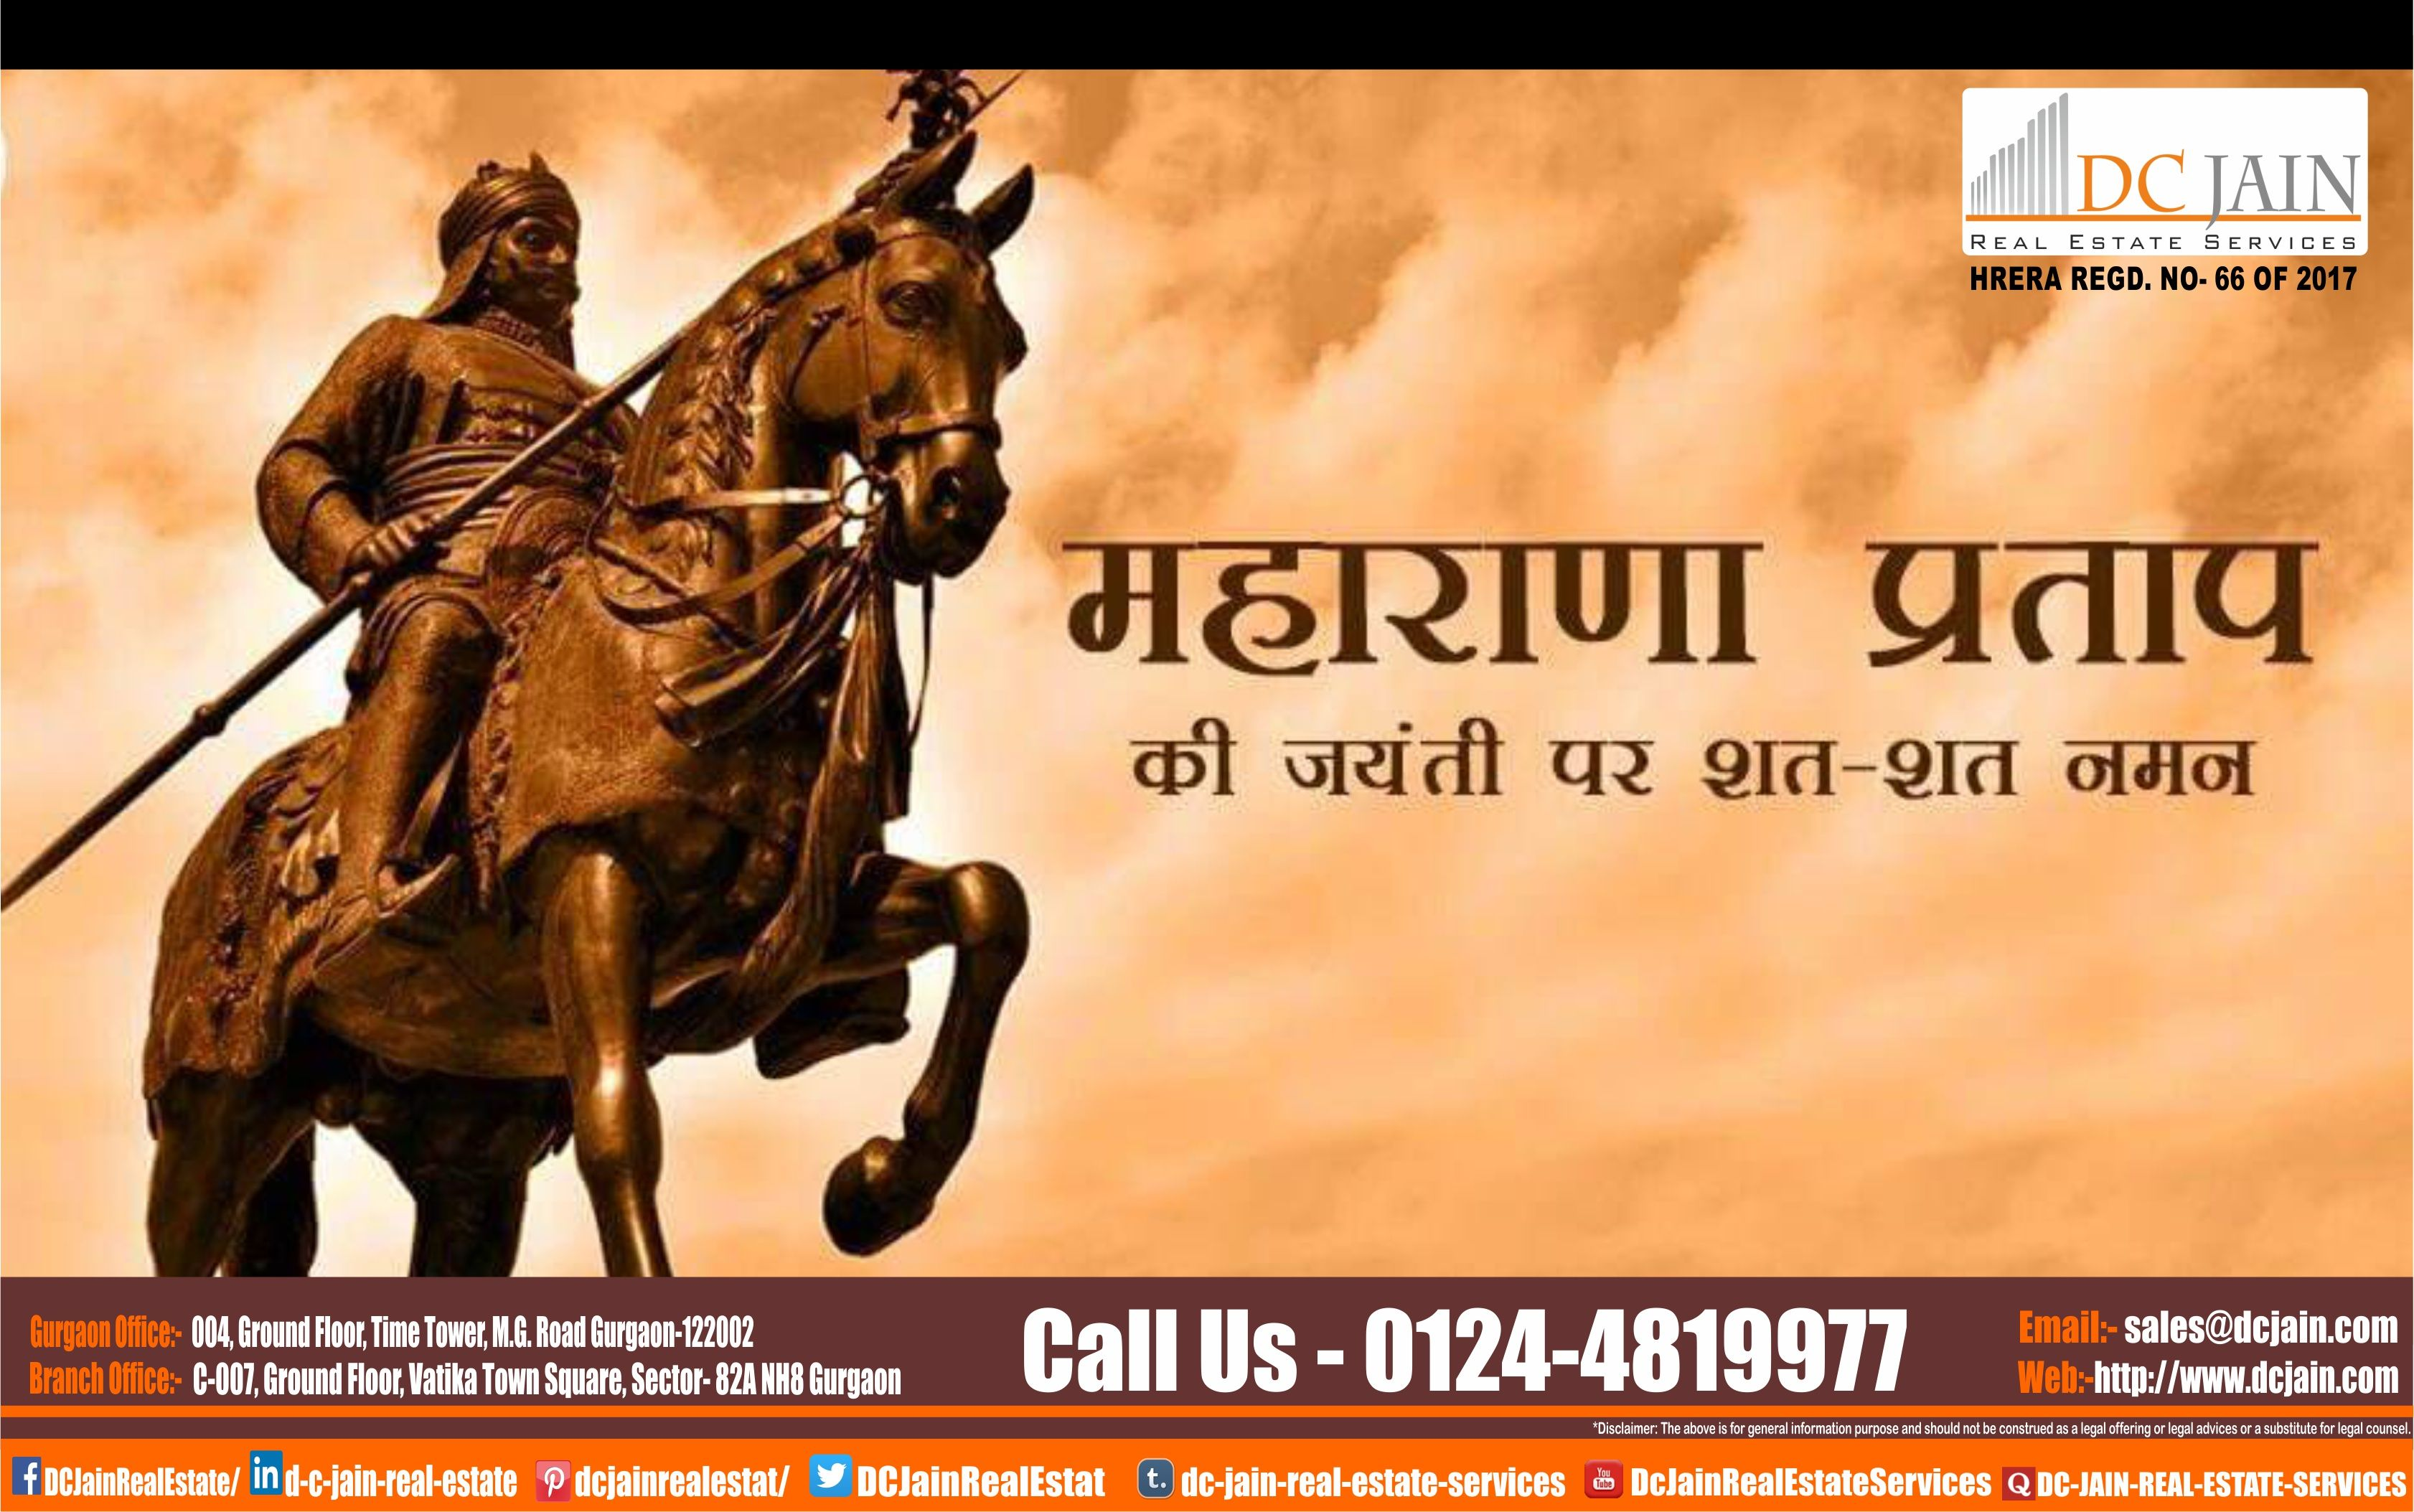 Remembering The King Of Mewar Maharanapratap The Great Warrior Who Influenced Indian History With Gueri Dream Properties Real Estate Services Great Warriors